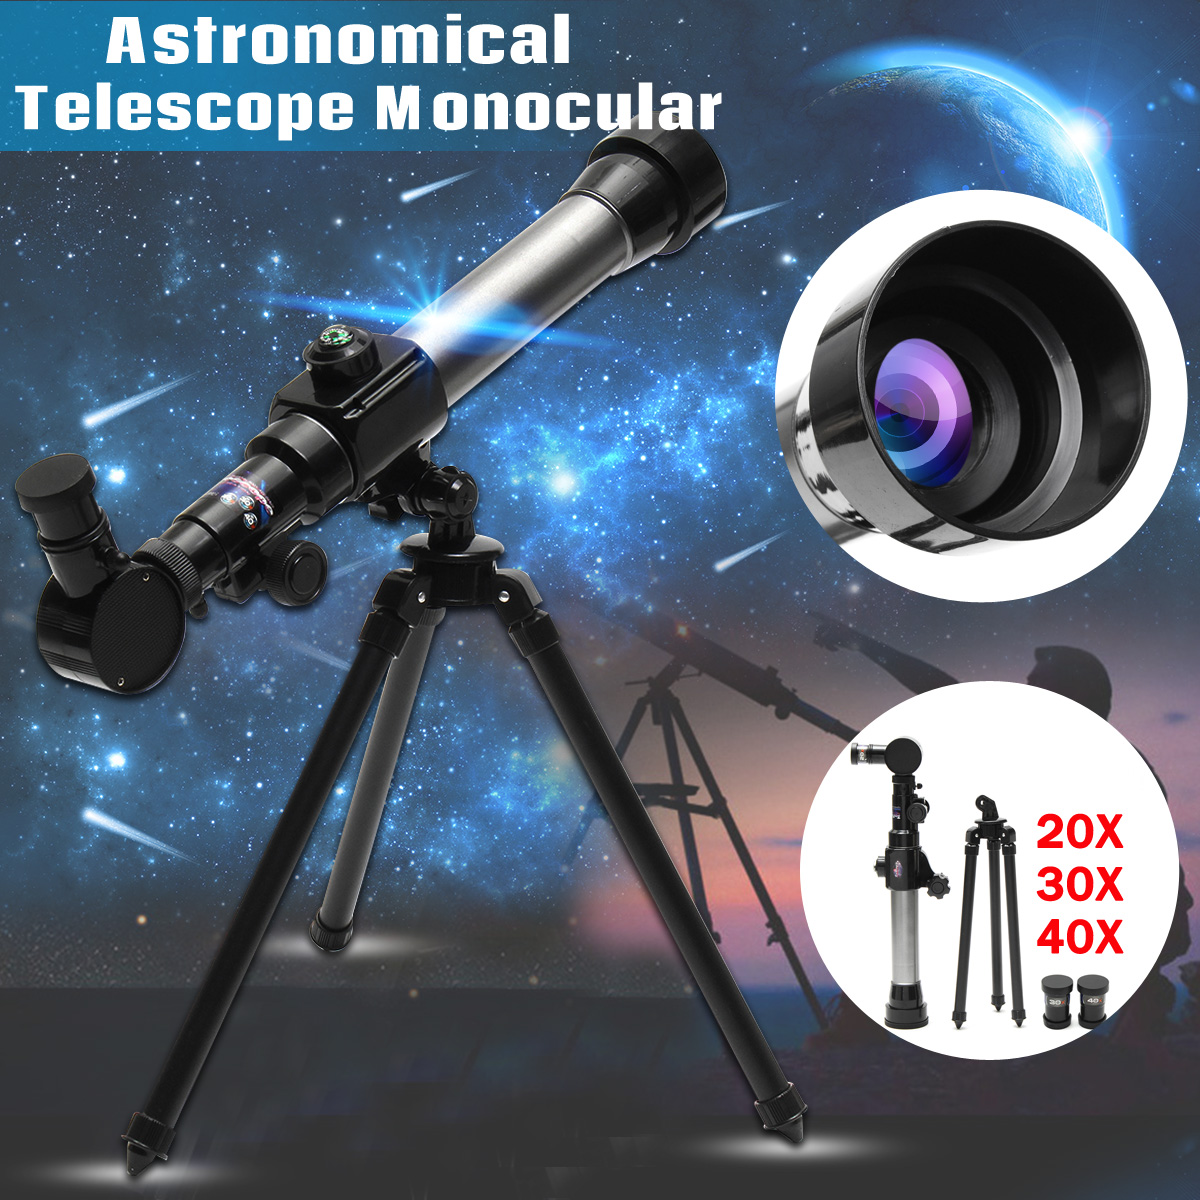 SGODDE 1 Set Children ABS HD Ourdoor Astronomical Telescope Monocular+20X/30X/40X Eyepiece Spotting Scope+Tripod Child Gift 20x magnification telescope lens w tripod back case set for iphone 5 silver red